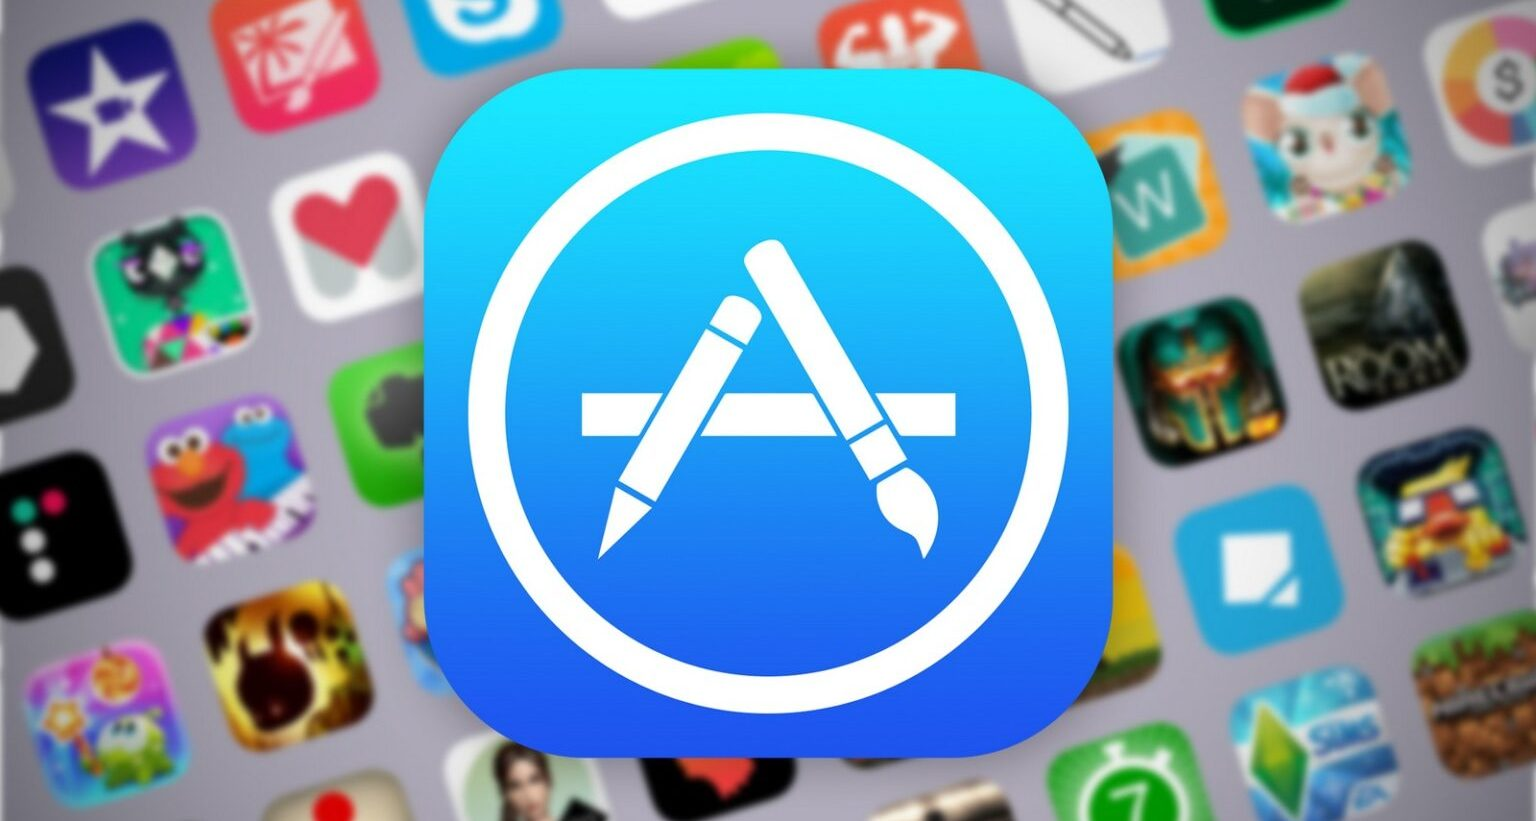 Apple and China take a joint step to launch app hunt